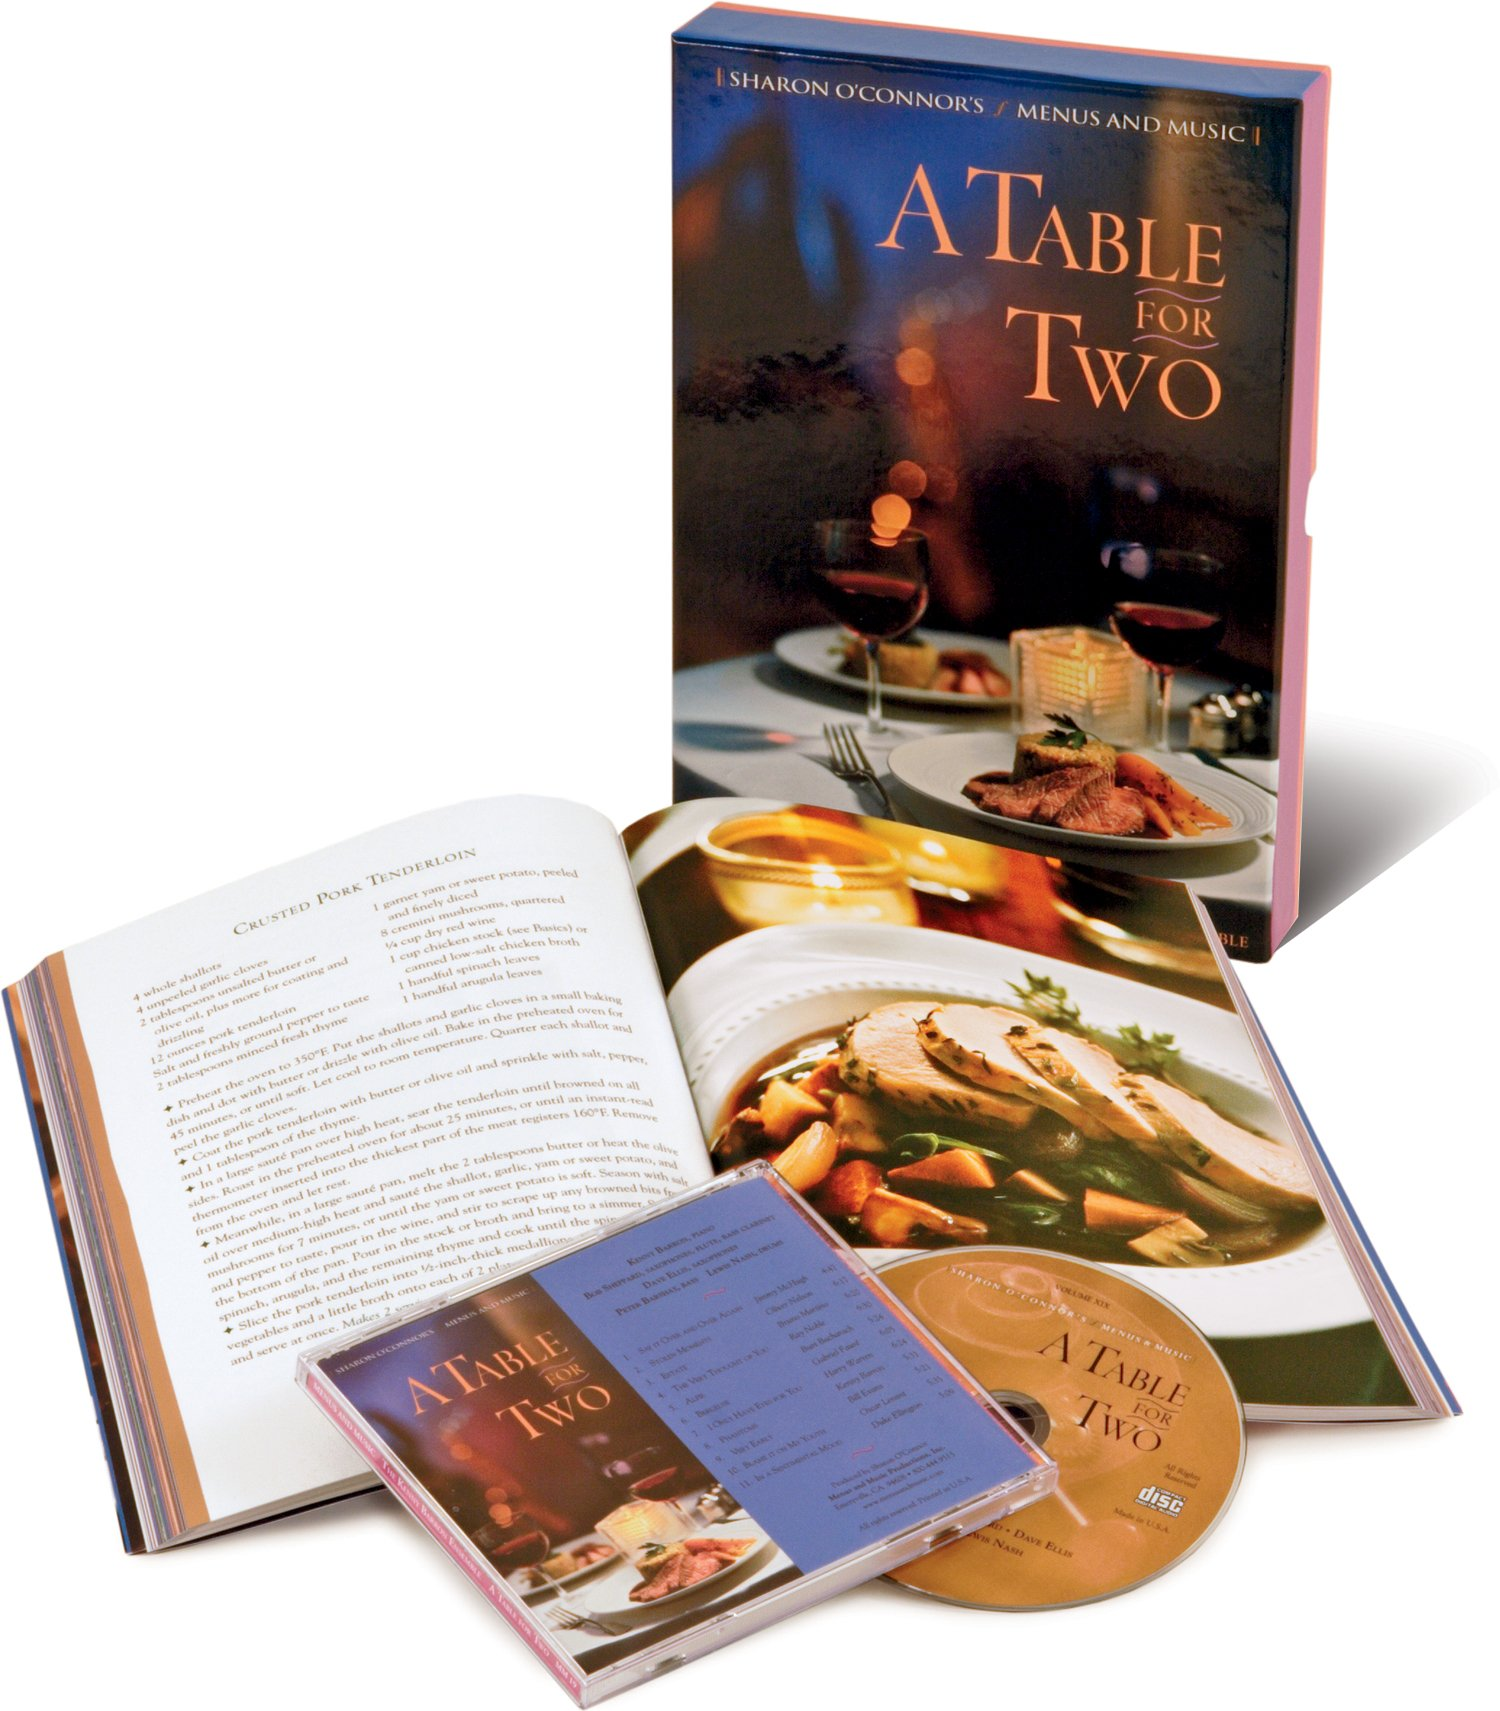 Download A Table for Two: Recipes from Celebrated City Restaurants; Romantic Jazz Ballads by the Kenny Barron Ensemble (Cookbook & Music CD Boxed Set) PDF